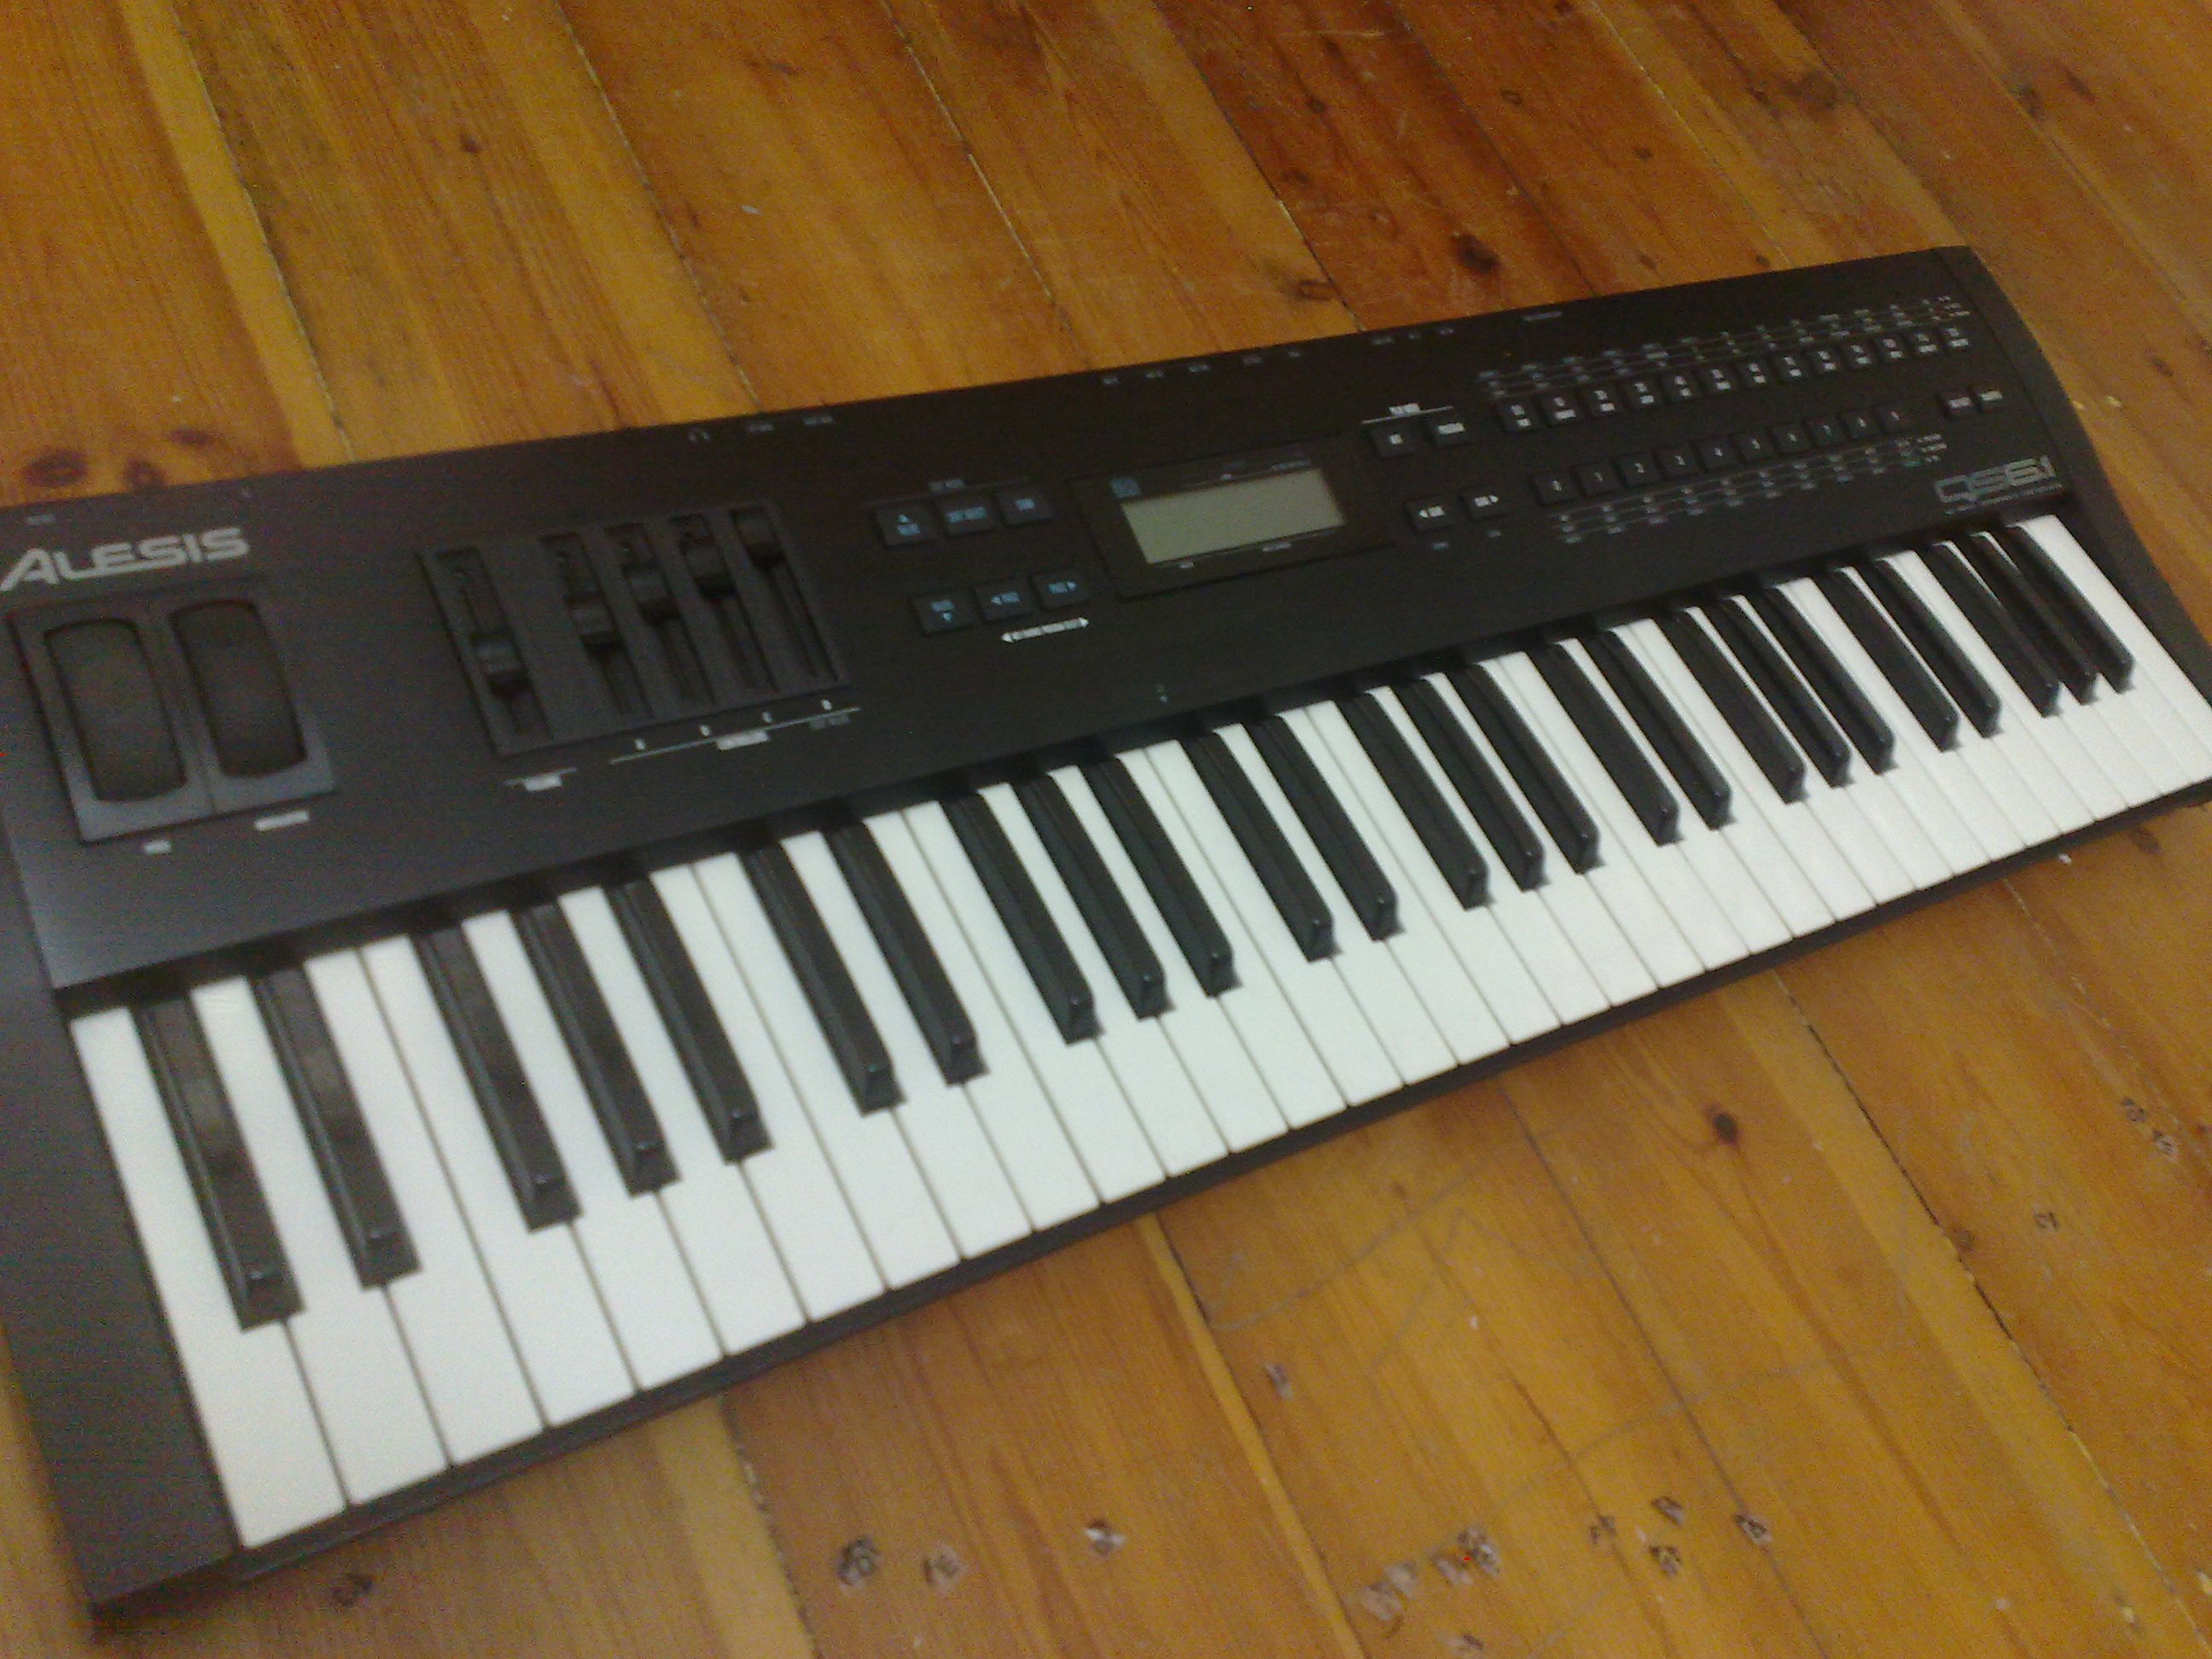 Used Keyboards For Sale : australia used keyboards musical instruments for sale buy sell classifieds ~ Vivirlamusica.com Haus und Dekorationen